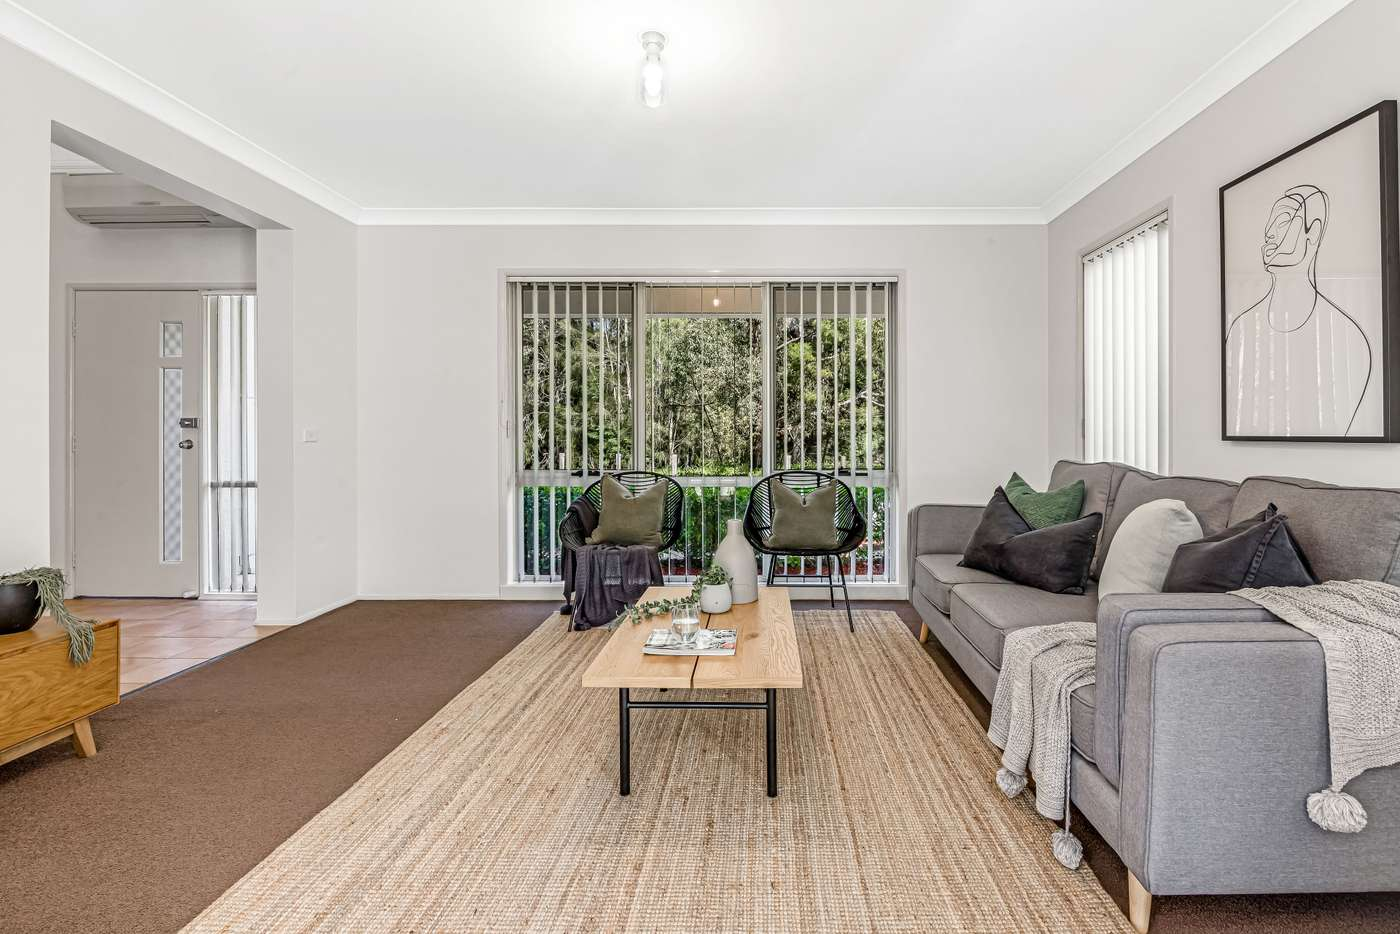 Sixth view of Homely house listing, 35 Midlands Terrace, Stanhope Gardens NSW 2768